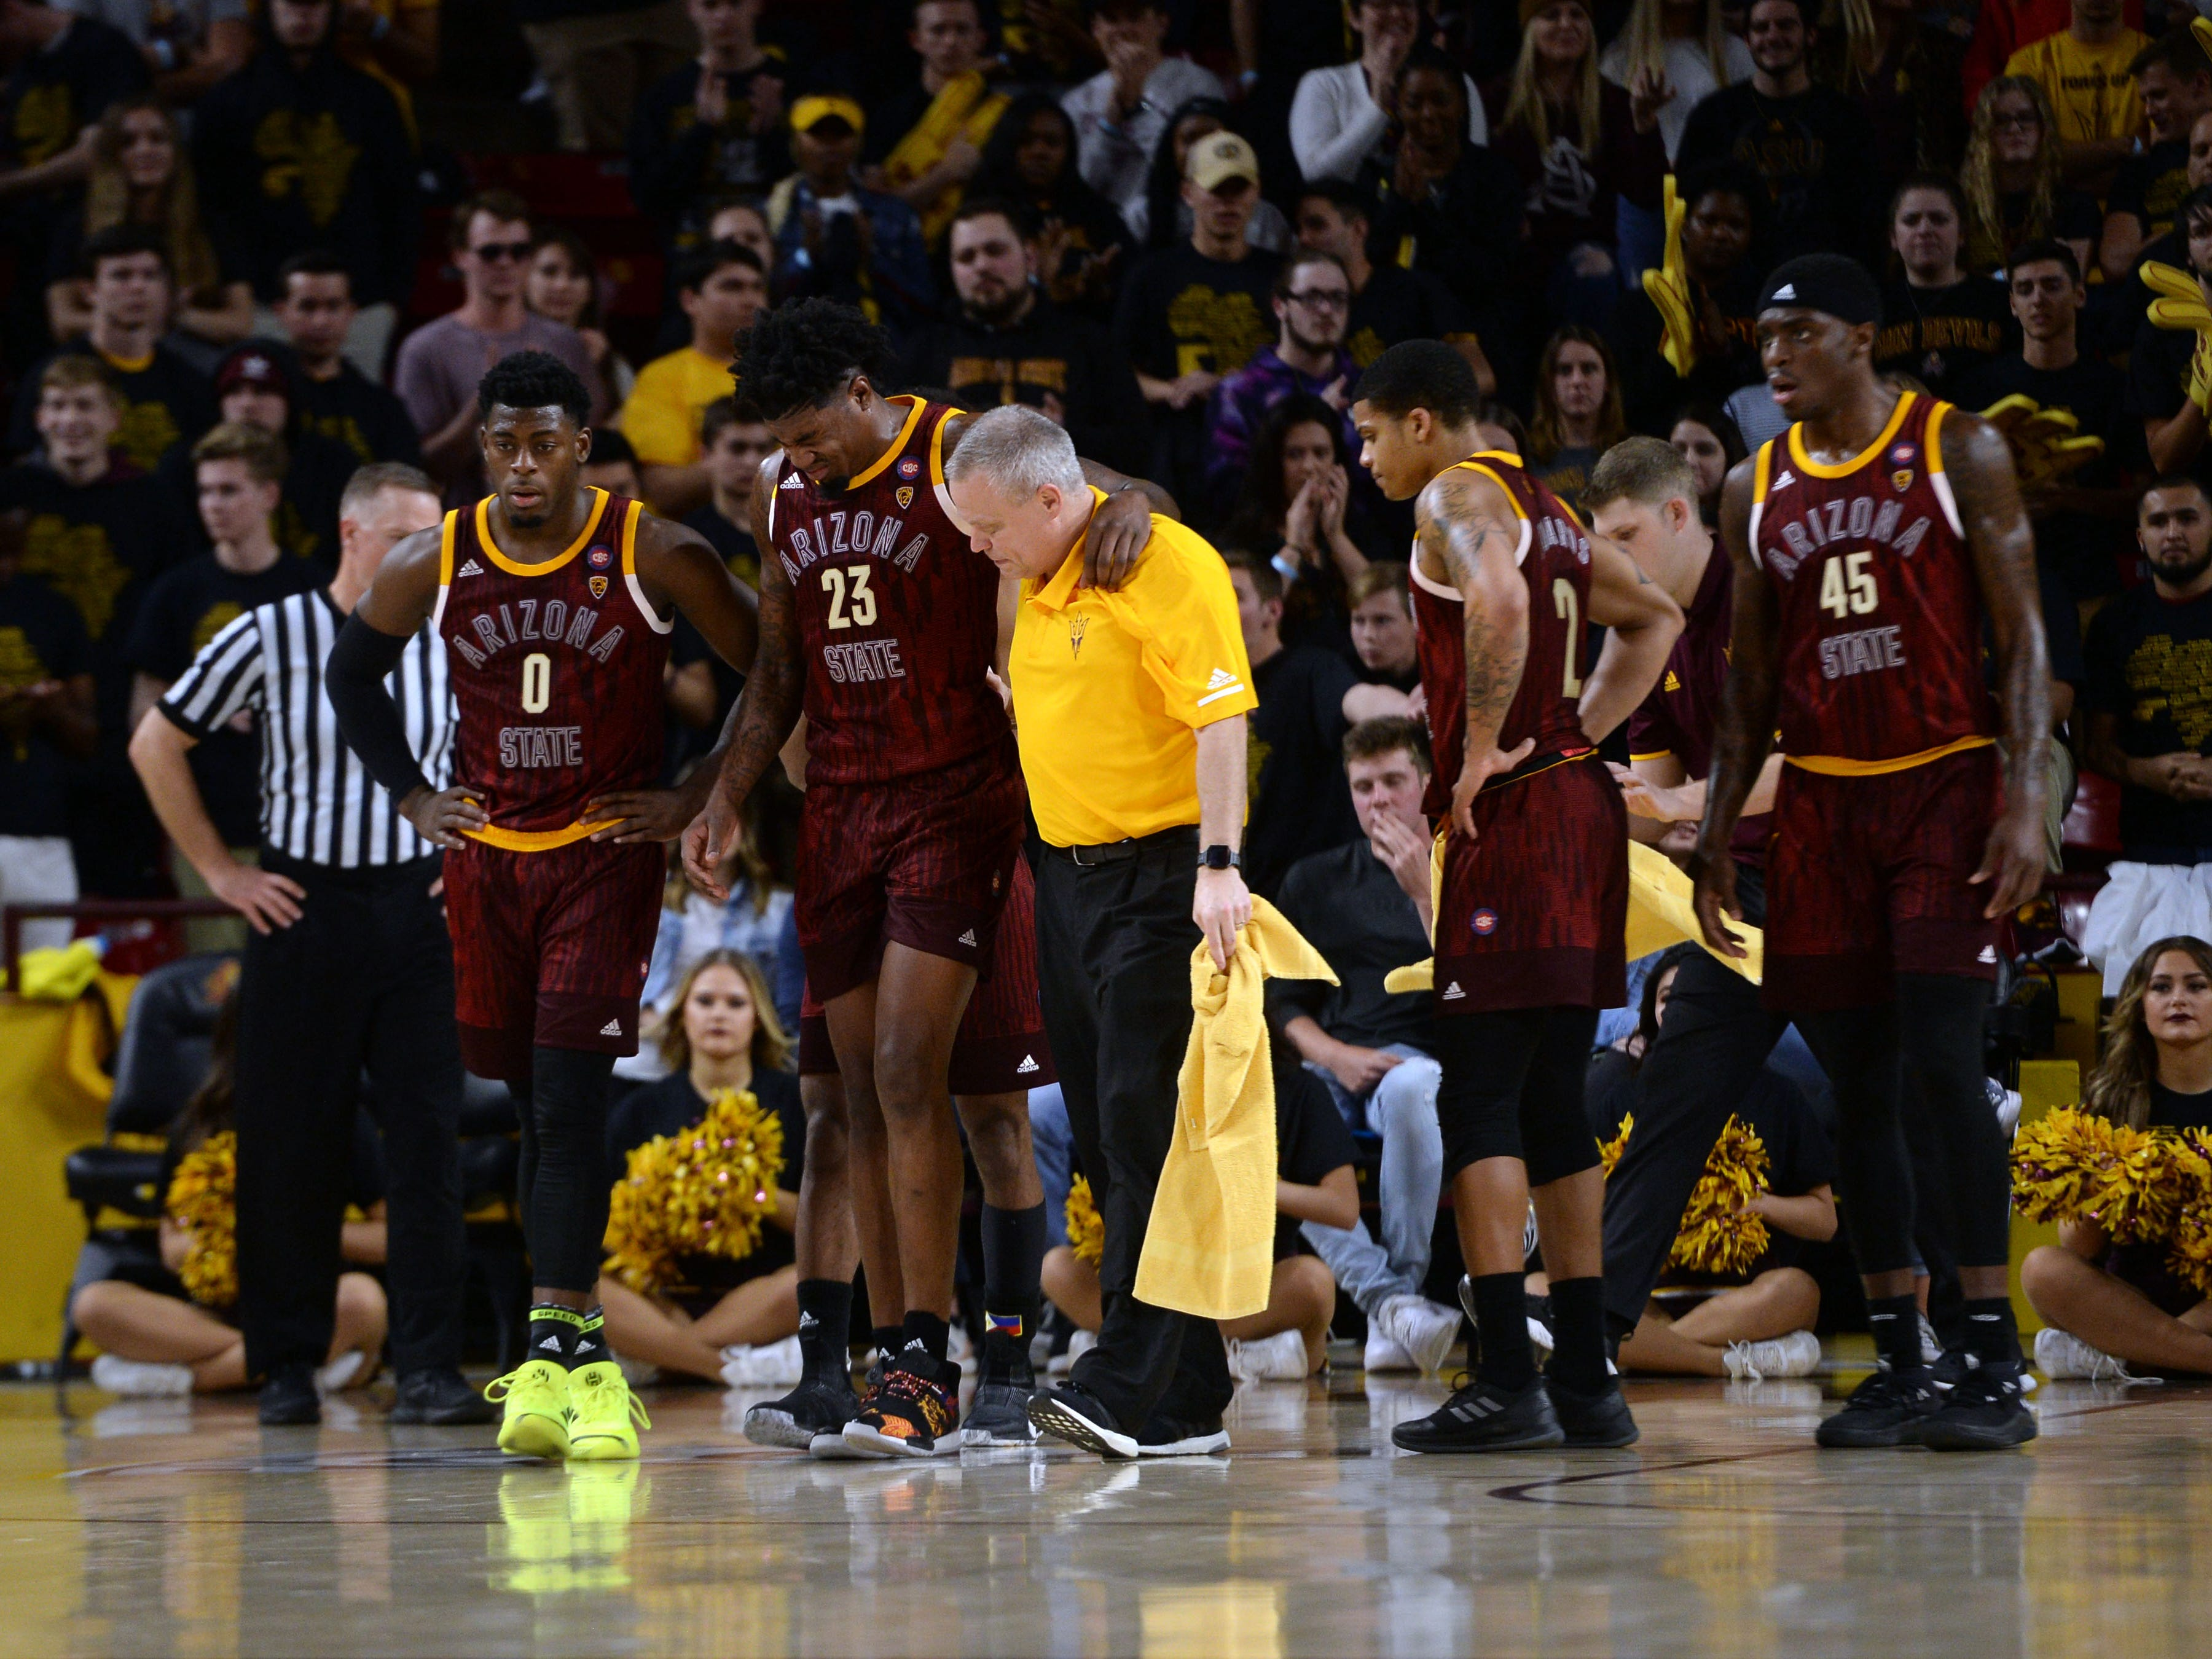 Feb 7, 2019; Tempe, AZ, USA; Arizona State Sun Devils forward Romello White (23) leaves the game with an injury against the Washington State Cougars during the second half at Wells Fargo Arena (AZ).